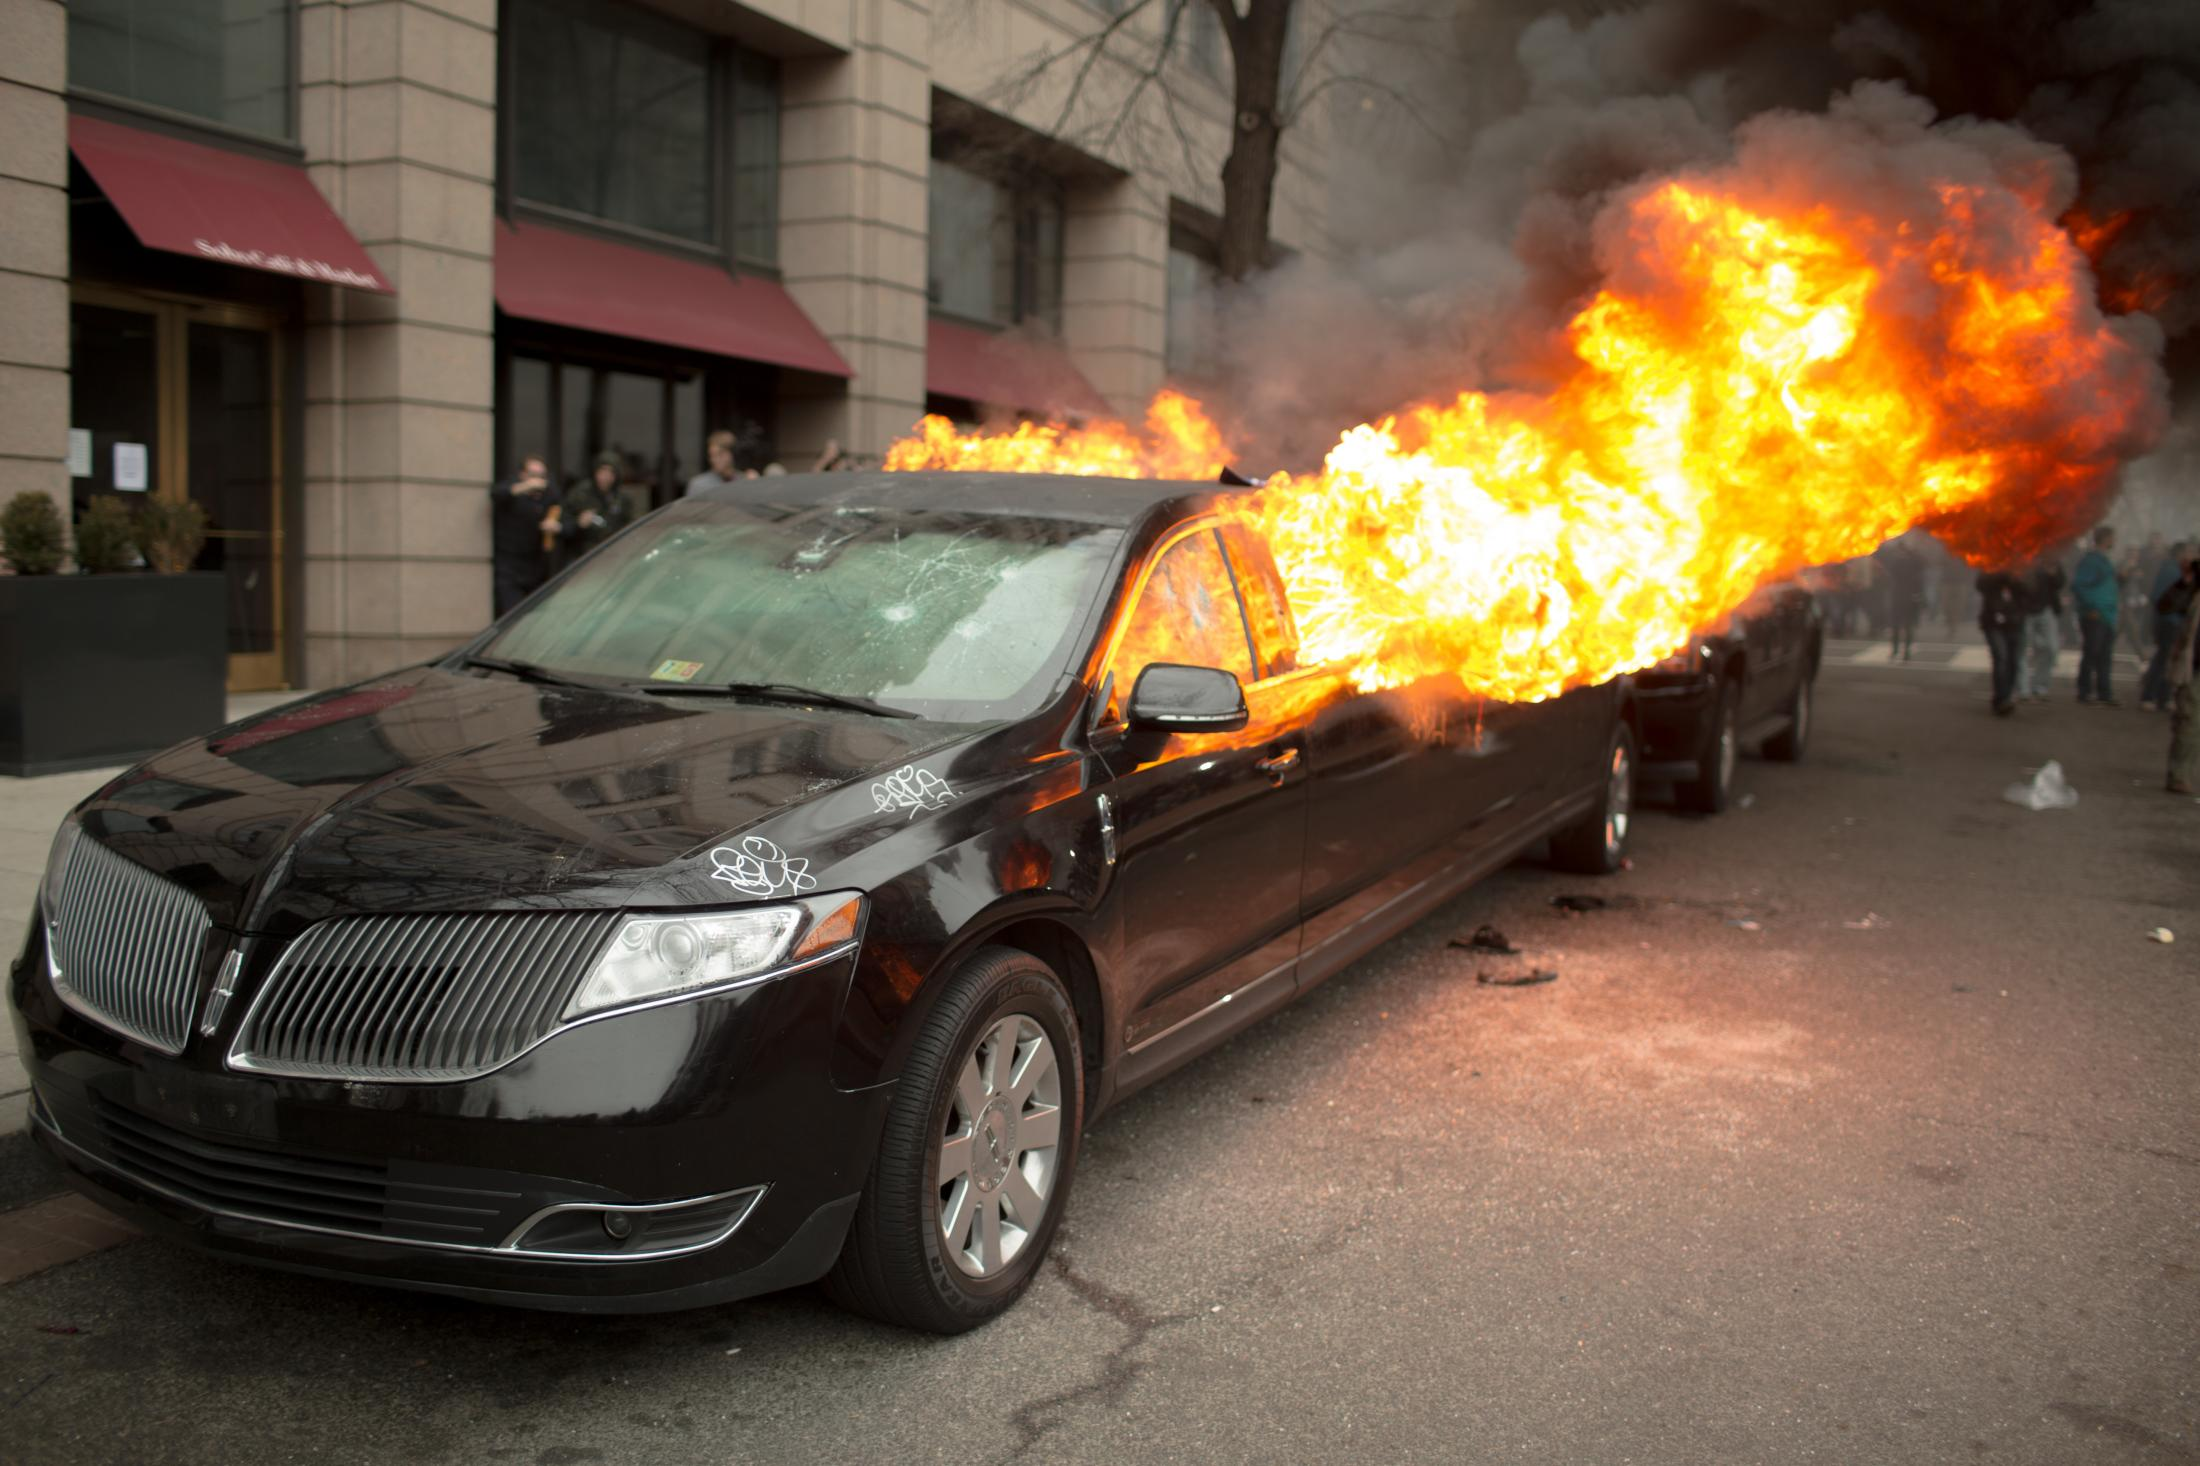 A limo parked on K Street burns set it on fire during violent demonstrations where police and protesters clashed outside of Donald Trump's presidential inauguration in Washington, D.C. on January 20, 2017.